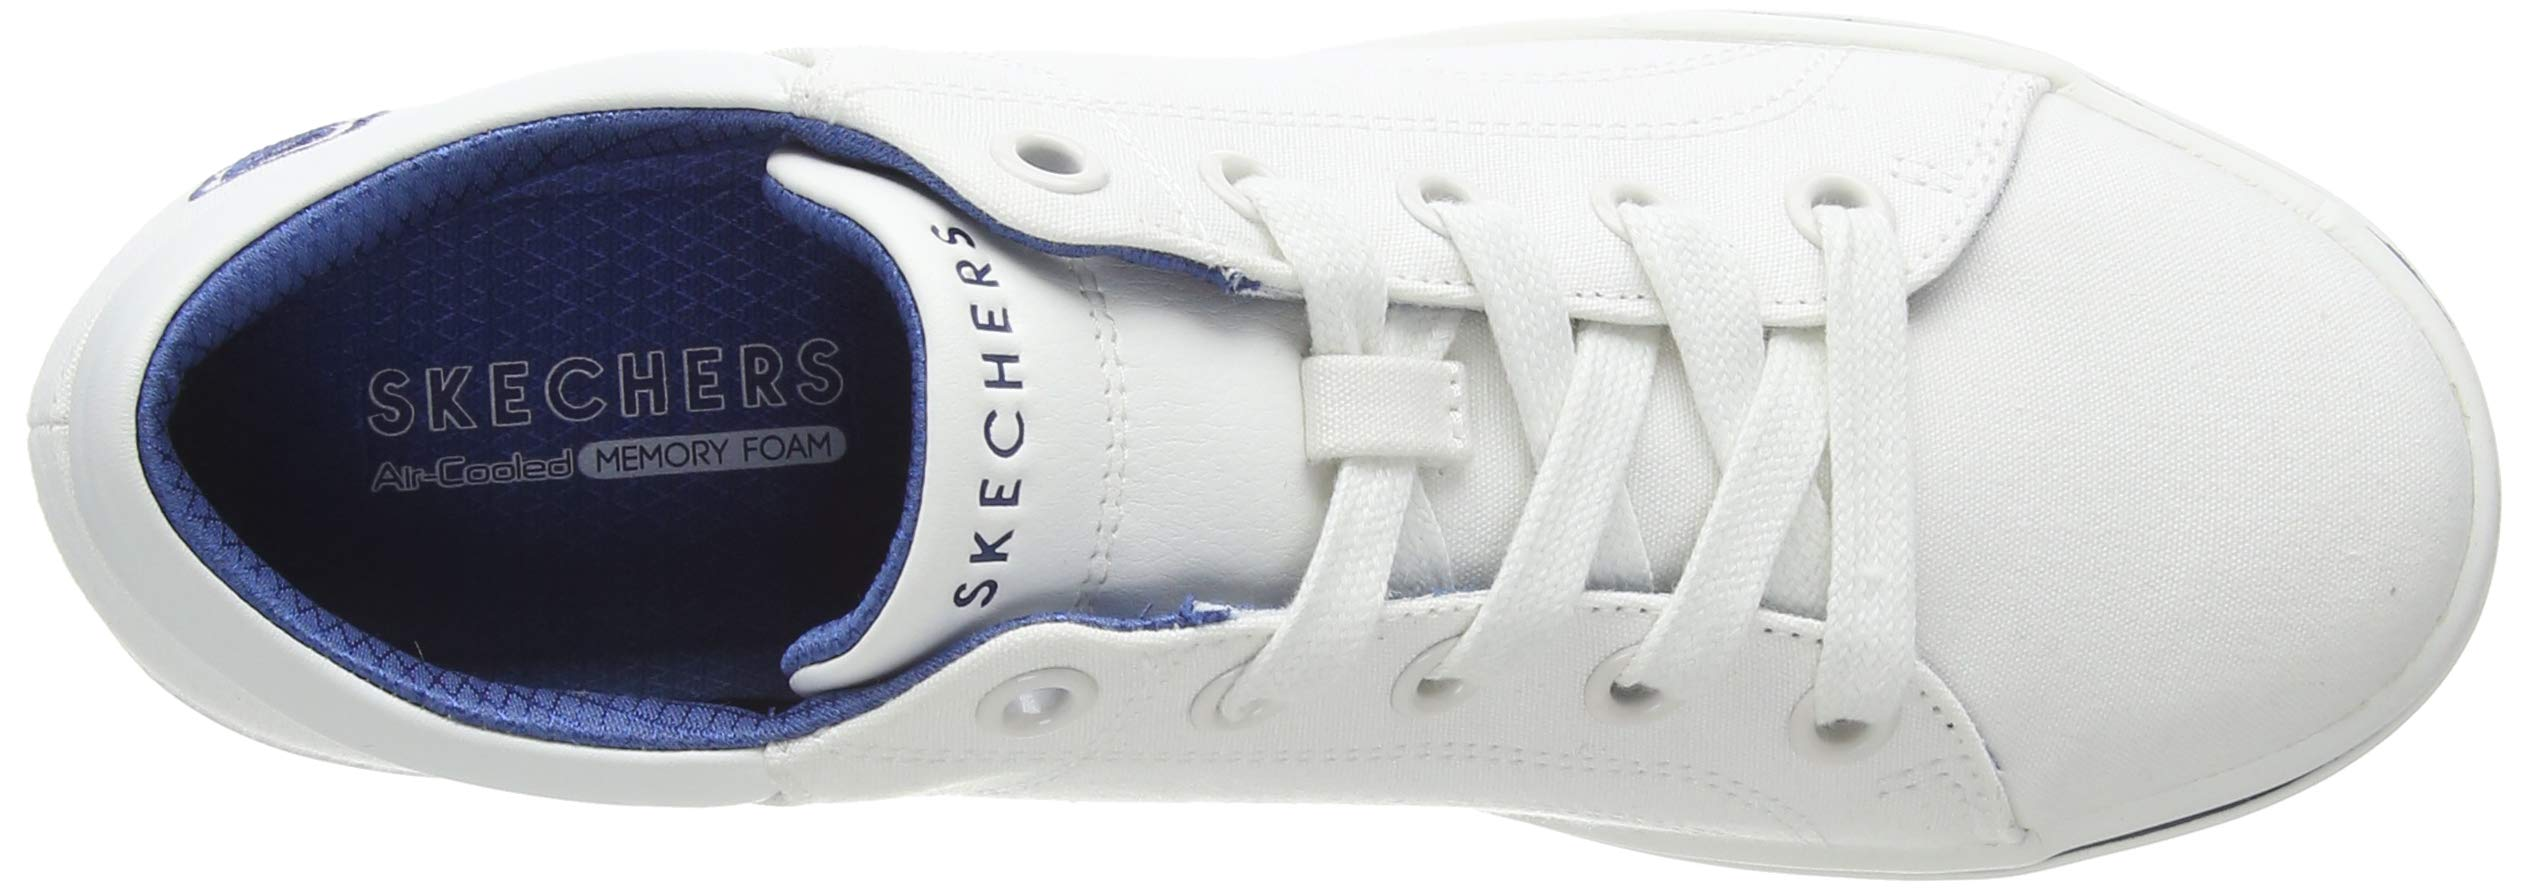 Skechers Women's Street Cleat. Canvas Contrast Stitch Lace Up Sneaker